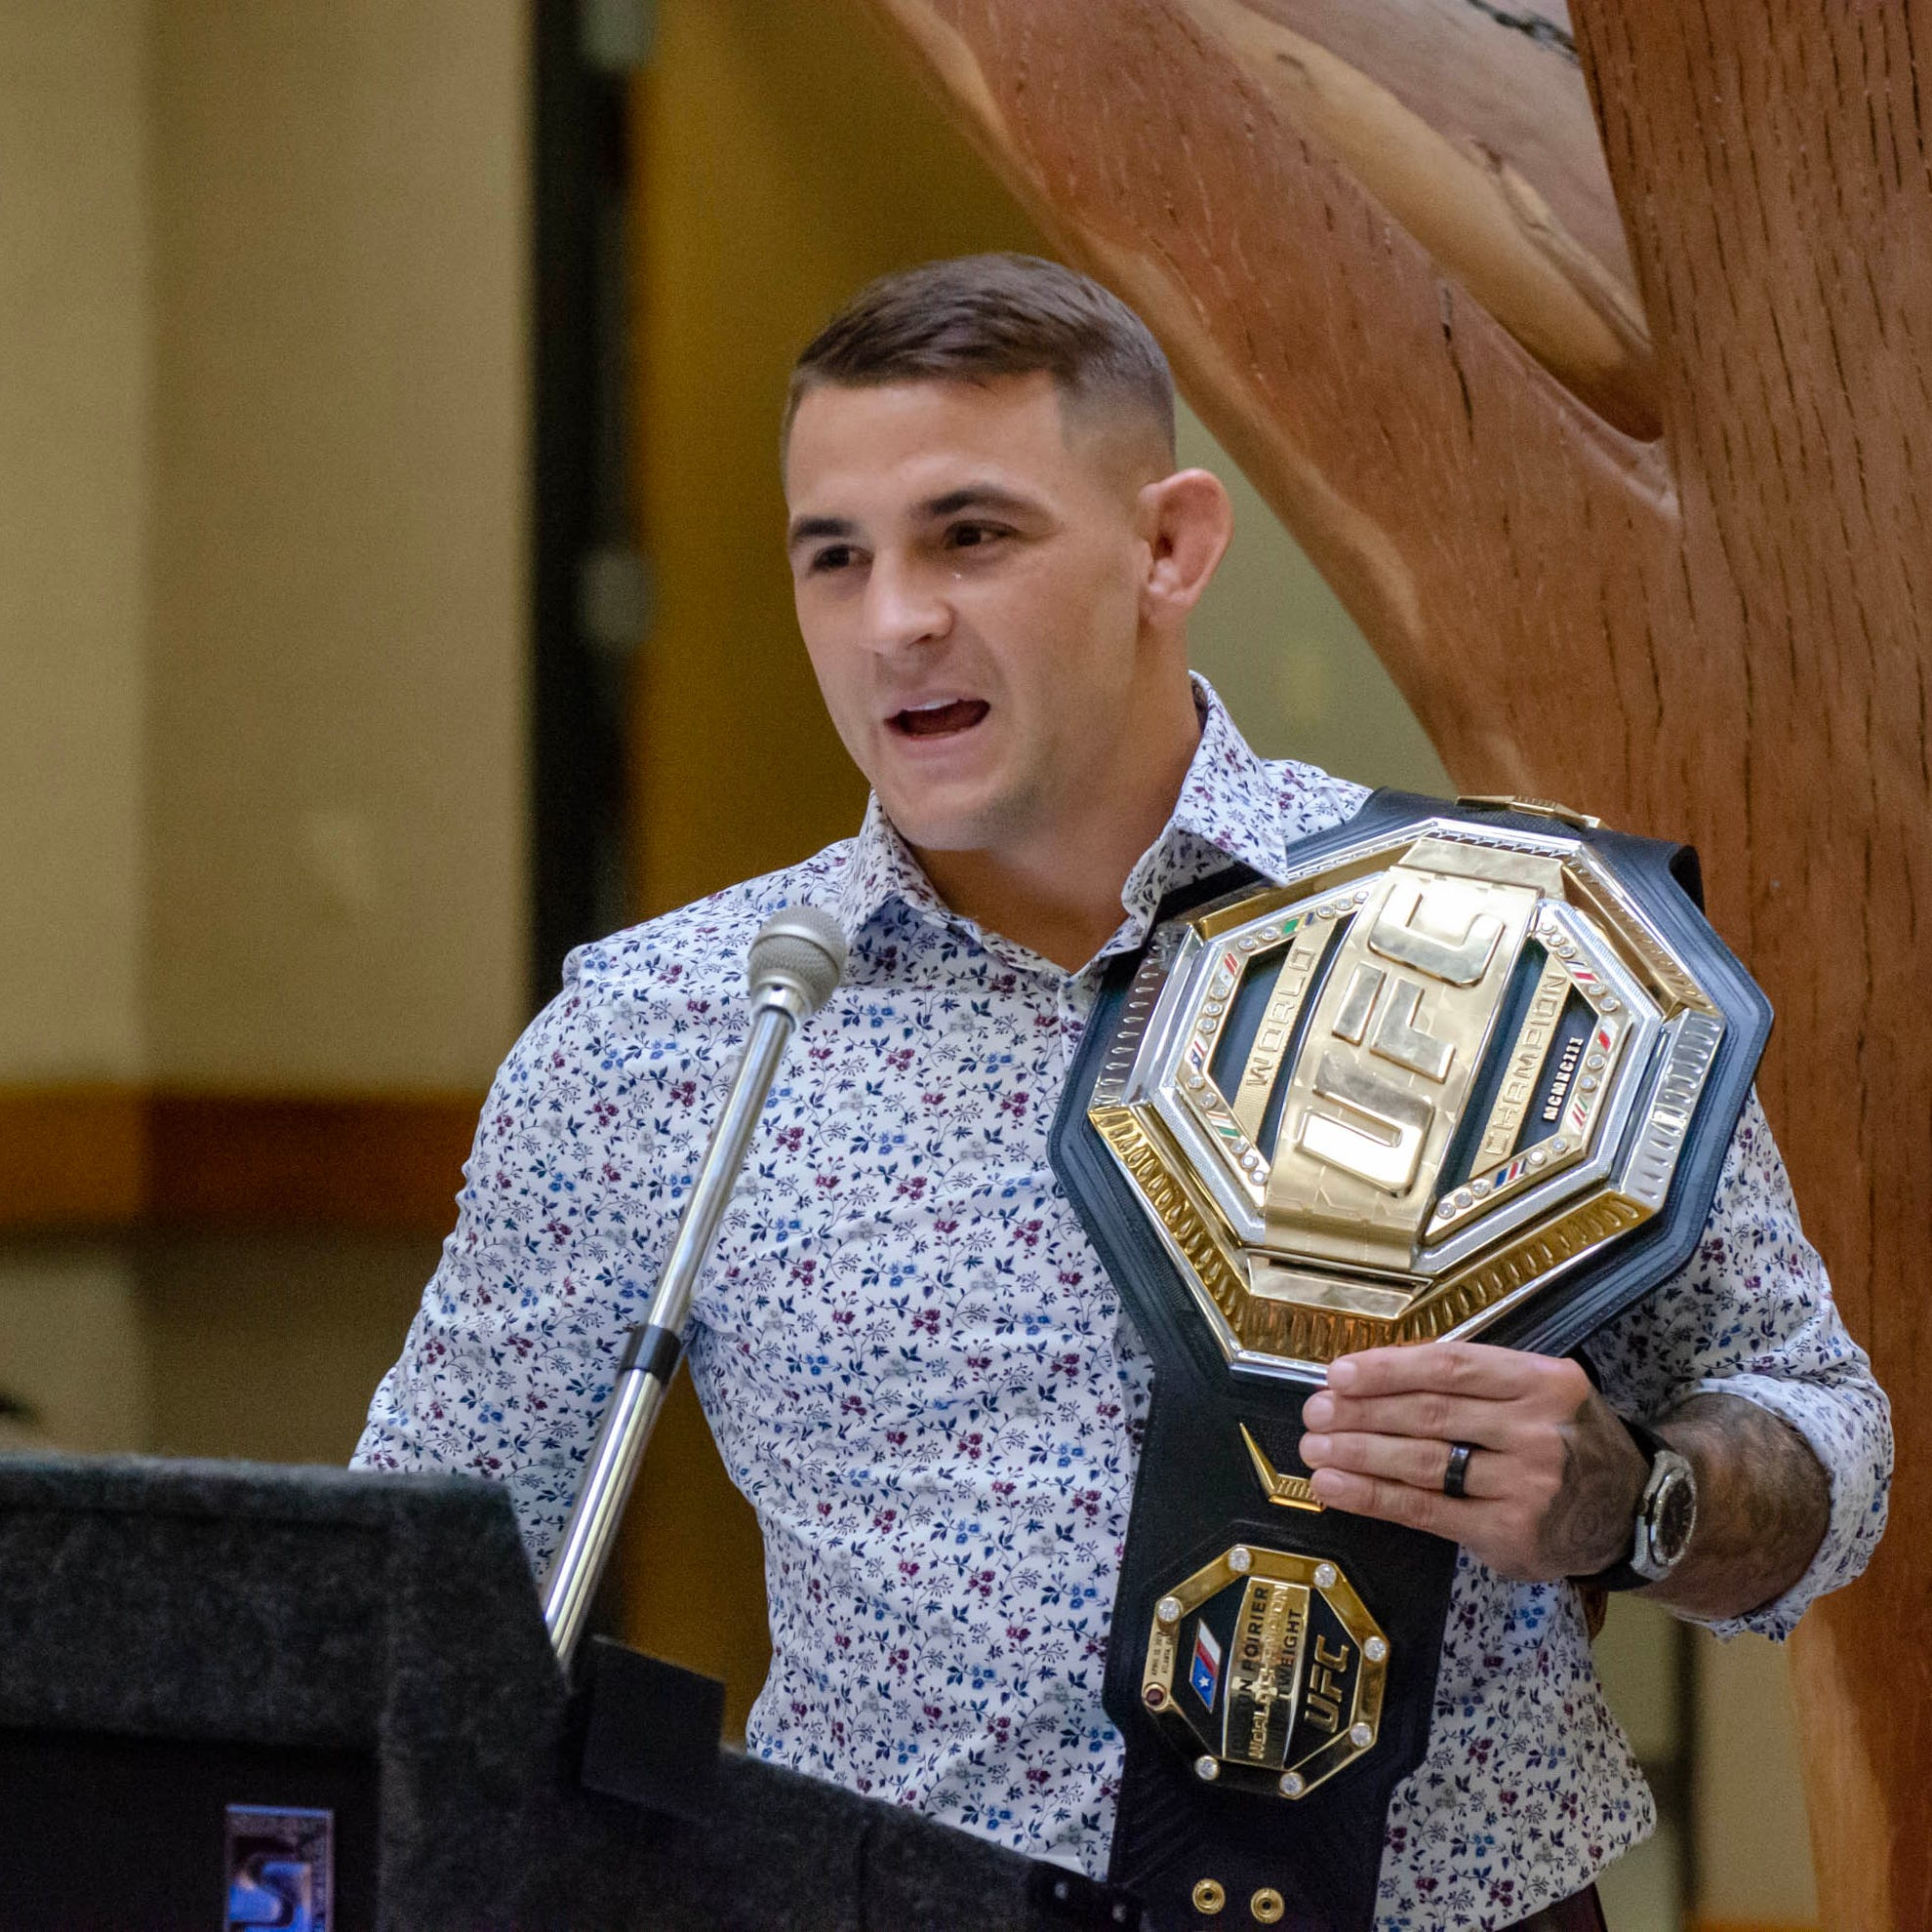 UFC champion Dustin Poirier giving back to city that means so much to him